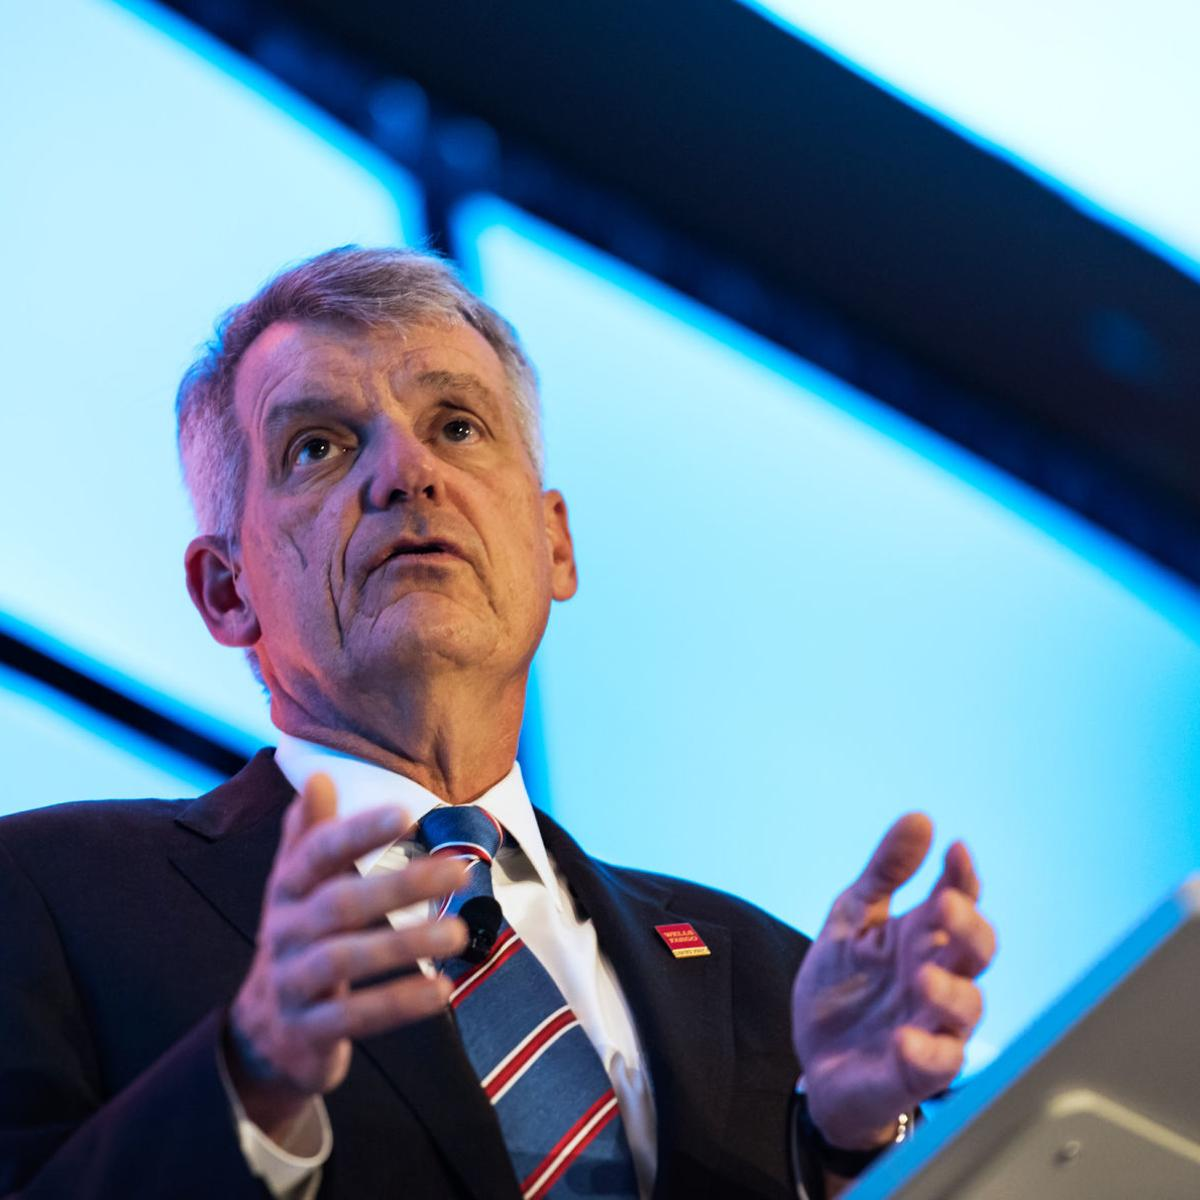 Wells Fargo's retired CEO could get nearly $70 million in